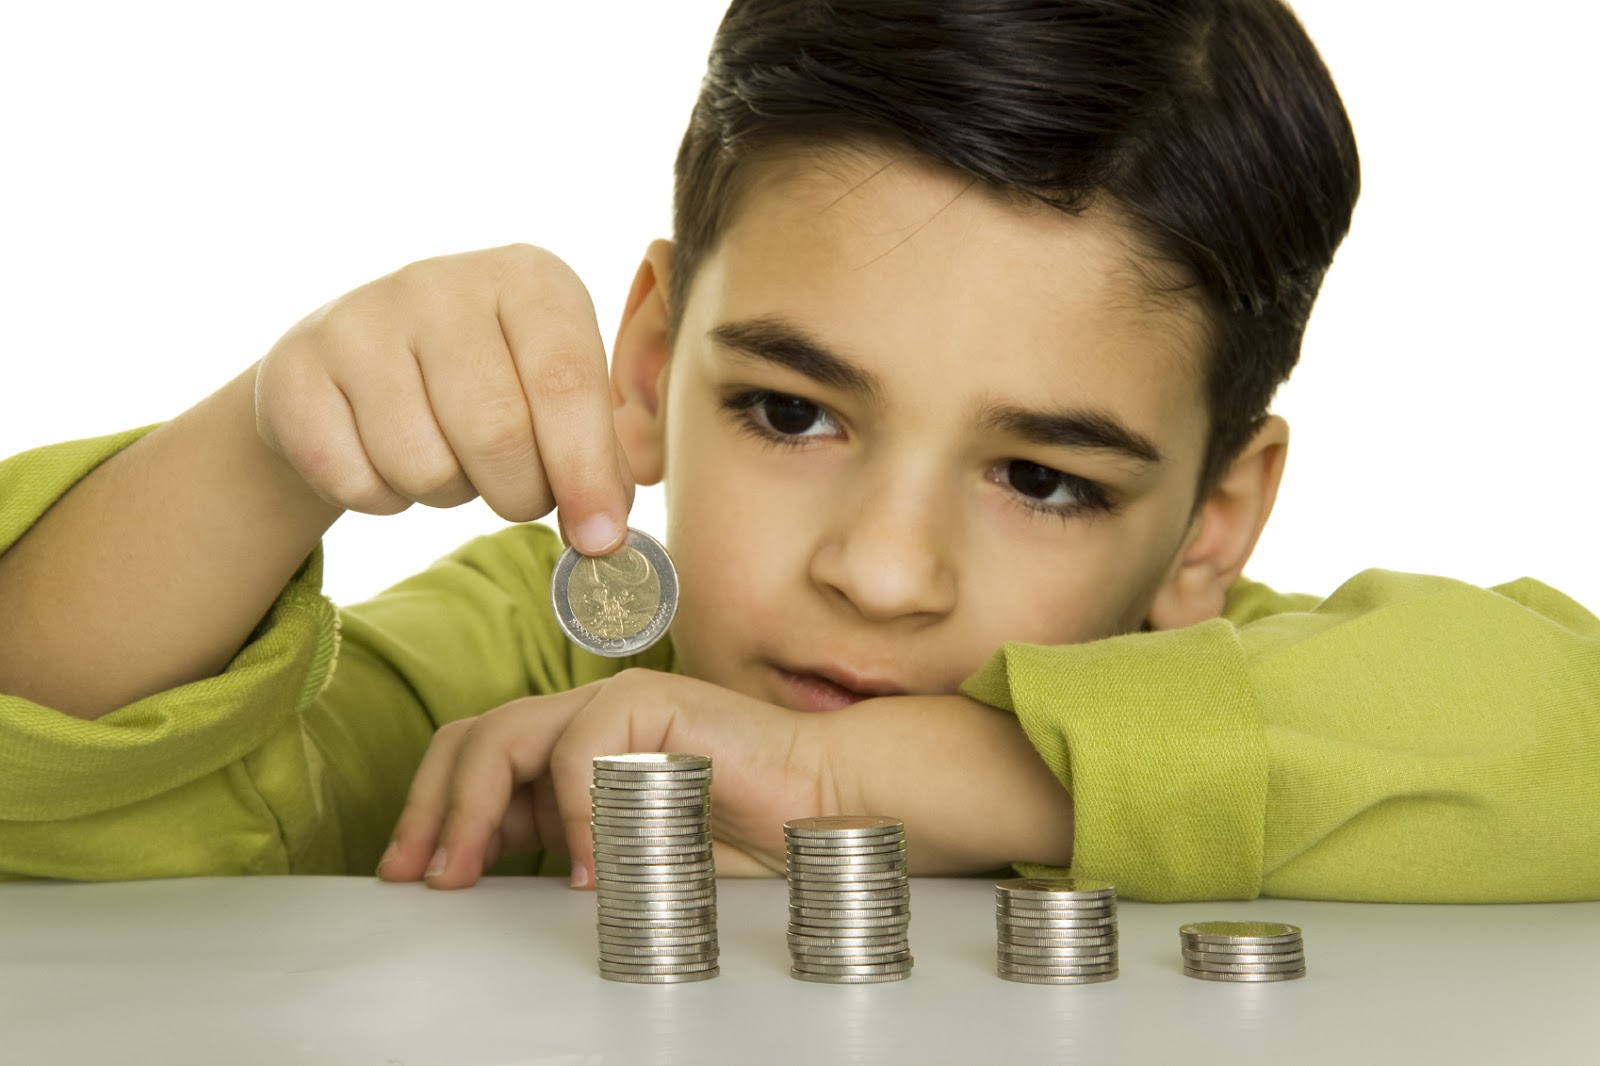 Child-counting-money